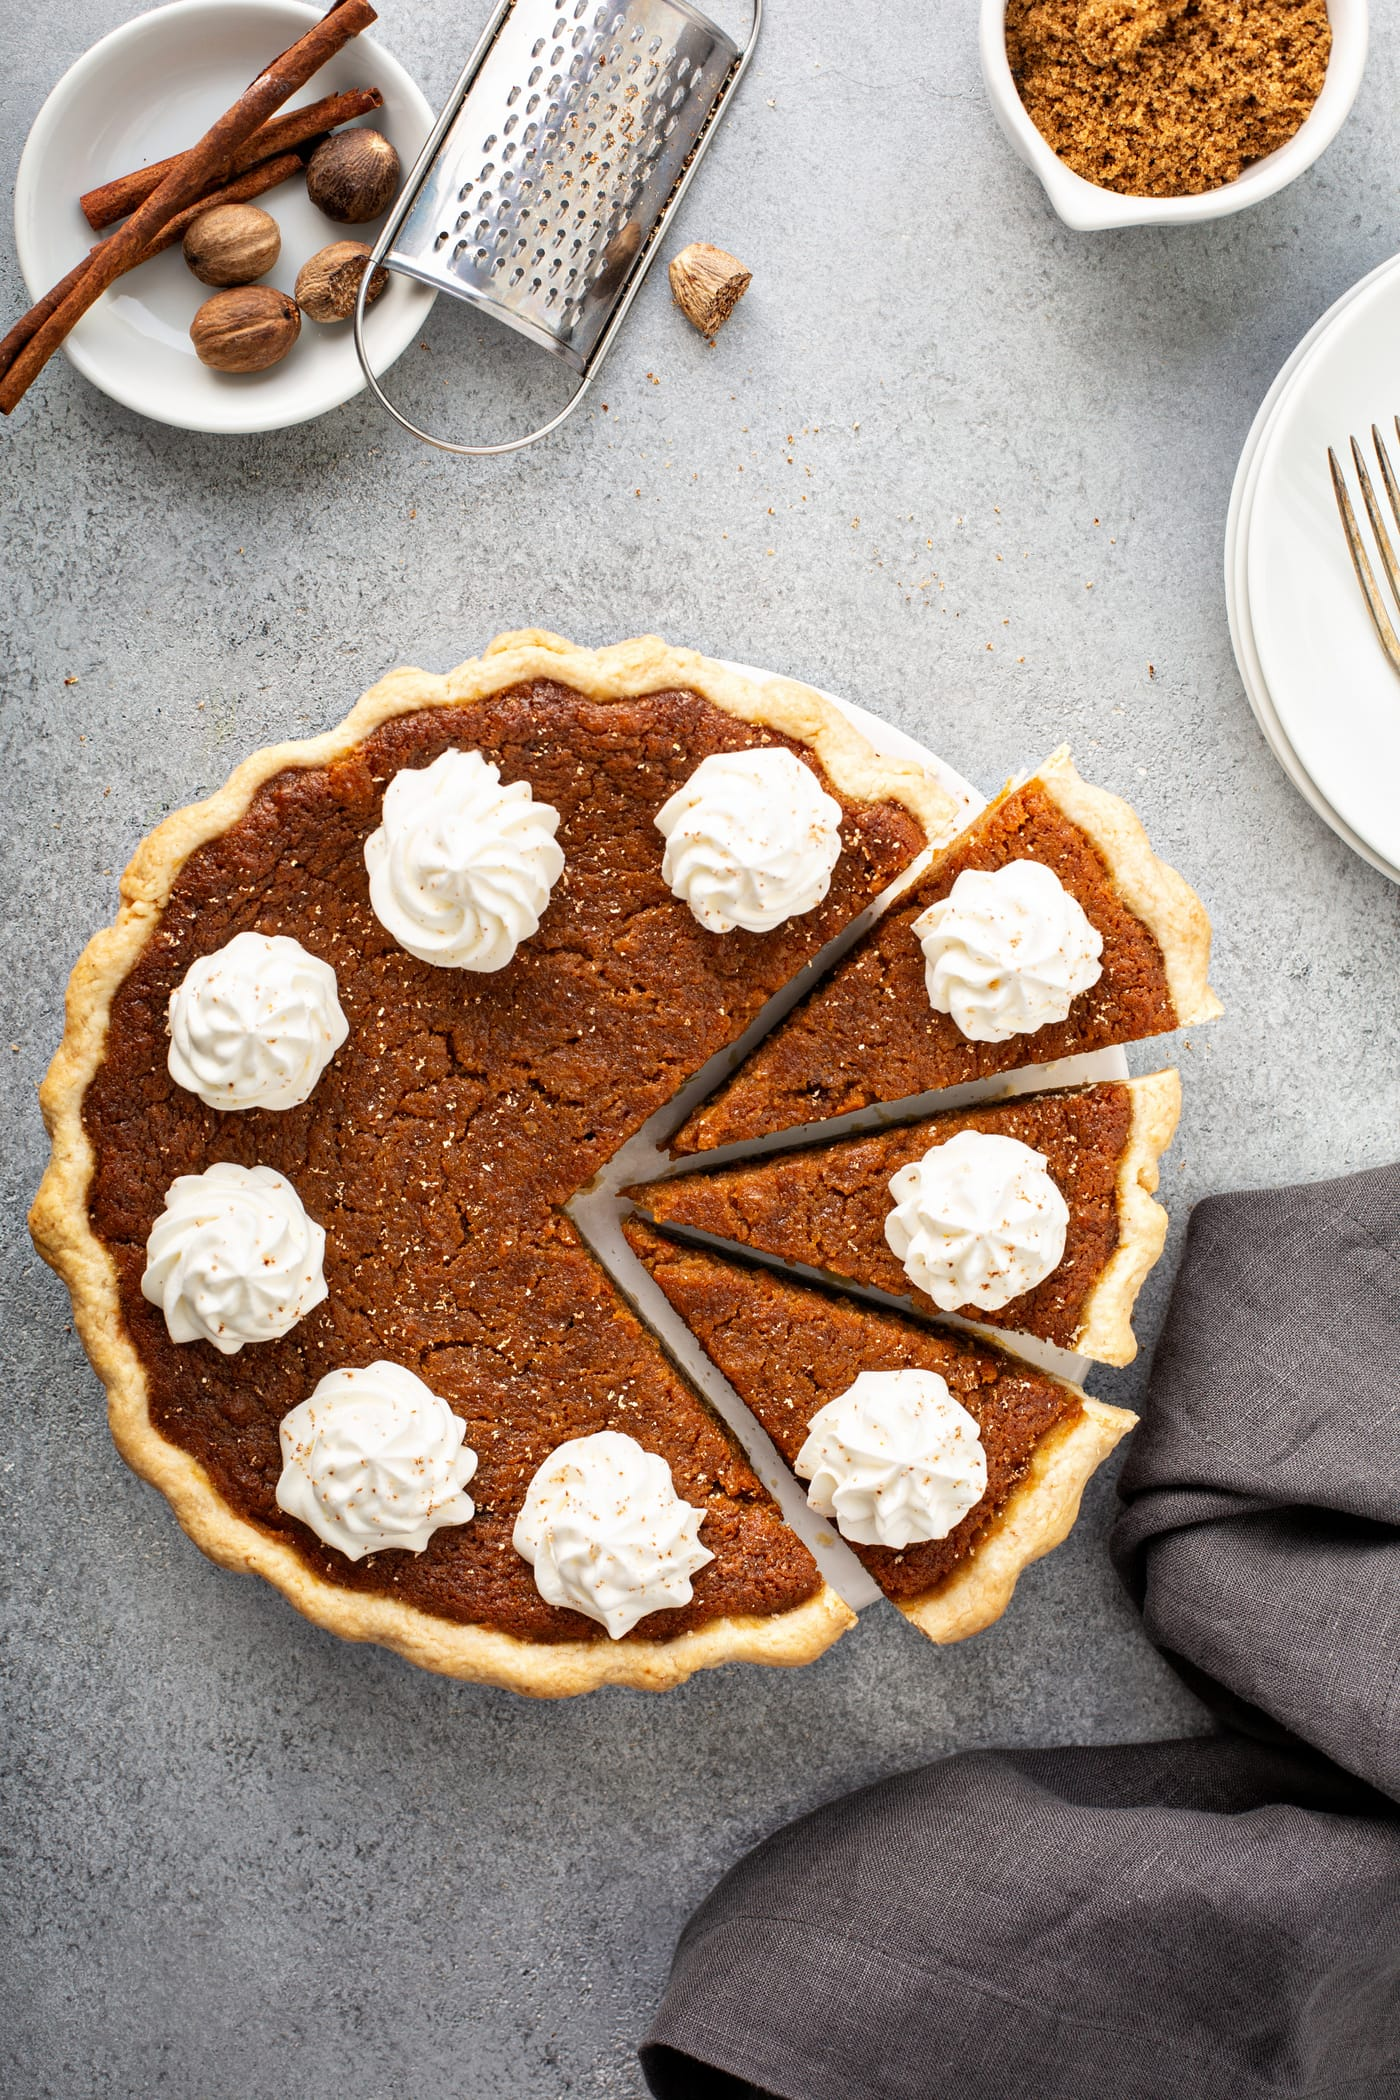 A photo of a baked sweet potato pie covered in dollops of whipped cream with three slices pulled out.